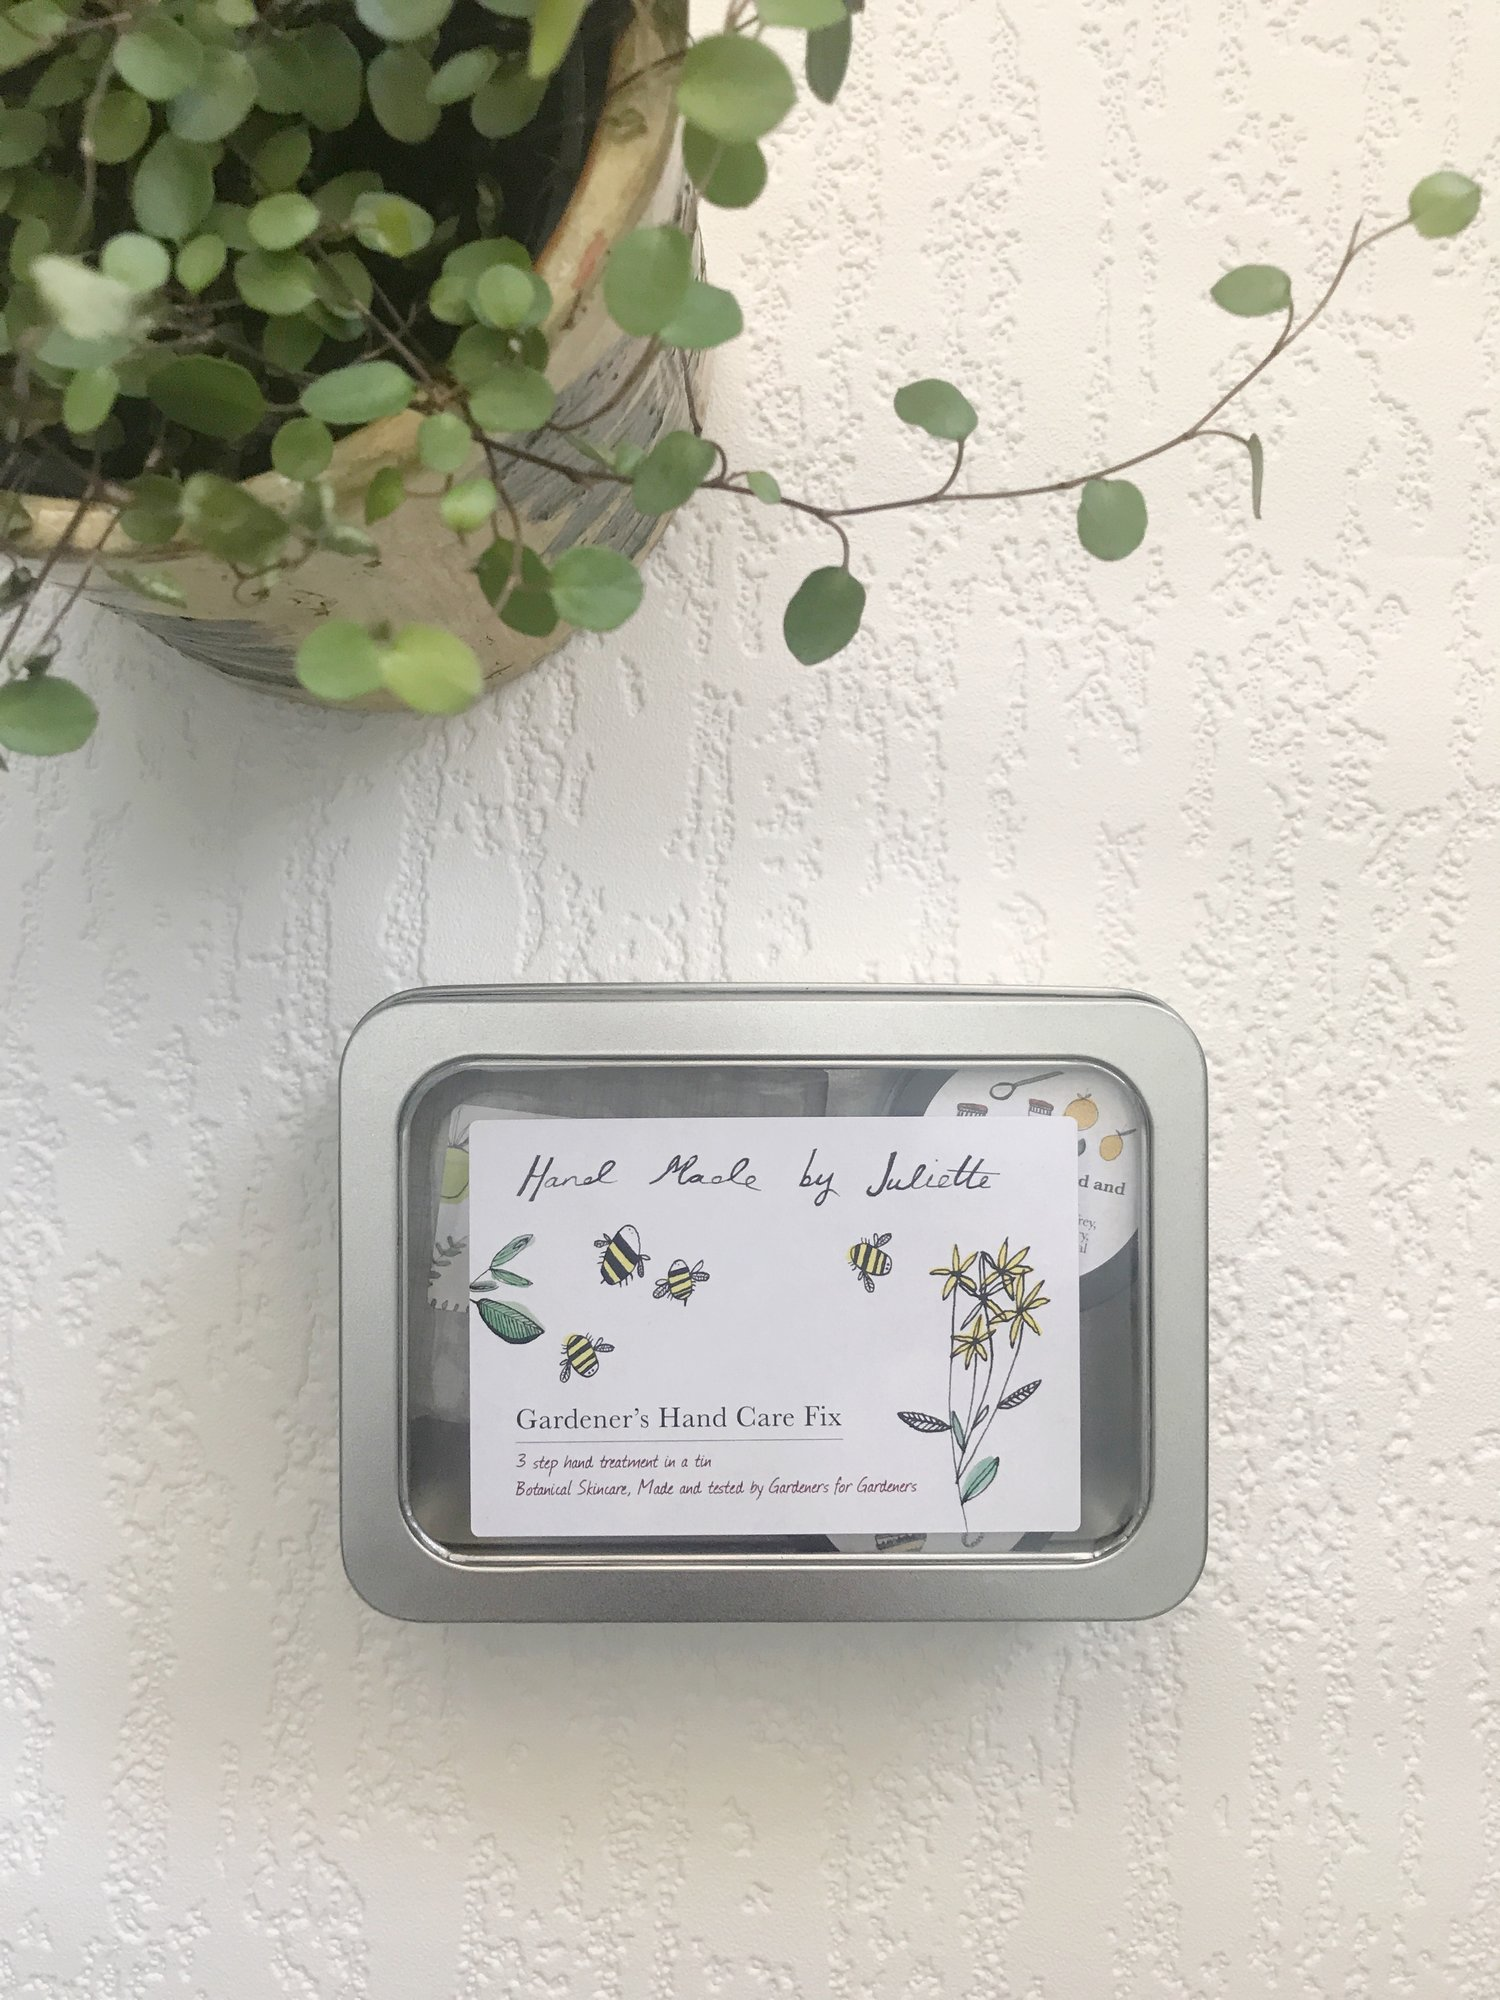 Juliette - Gardeners Hand Care